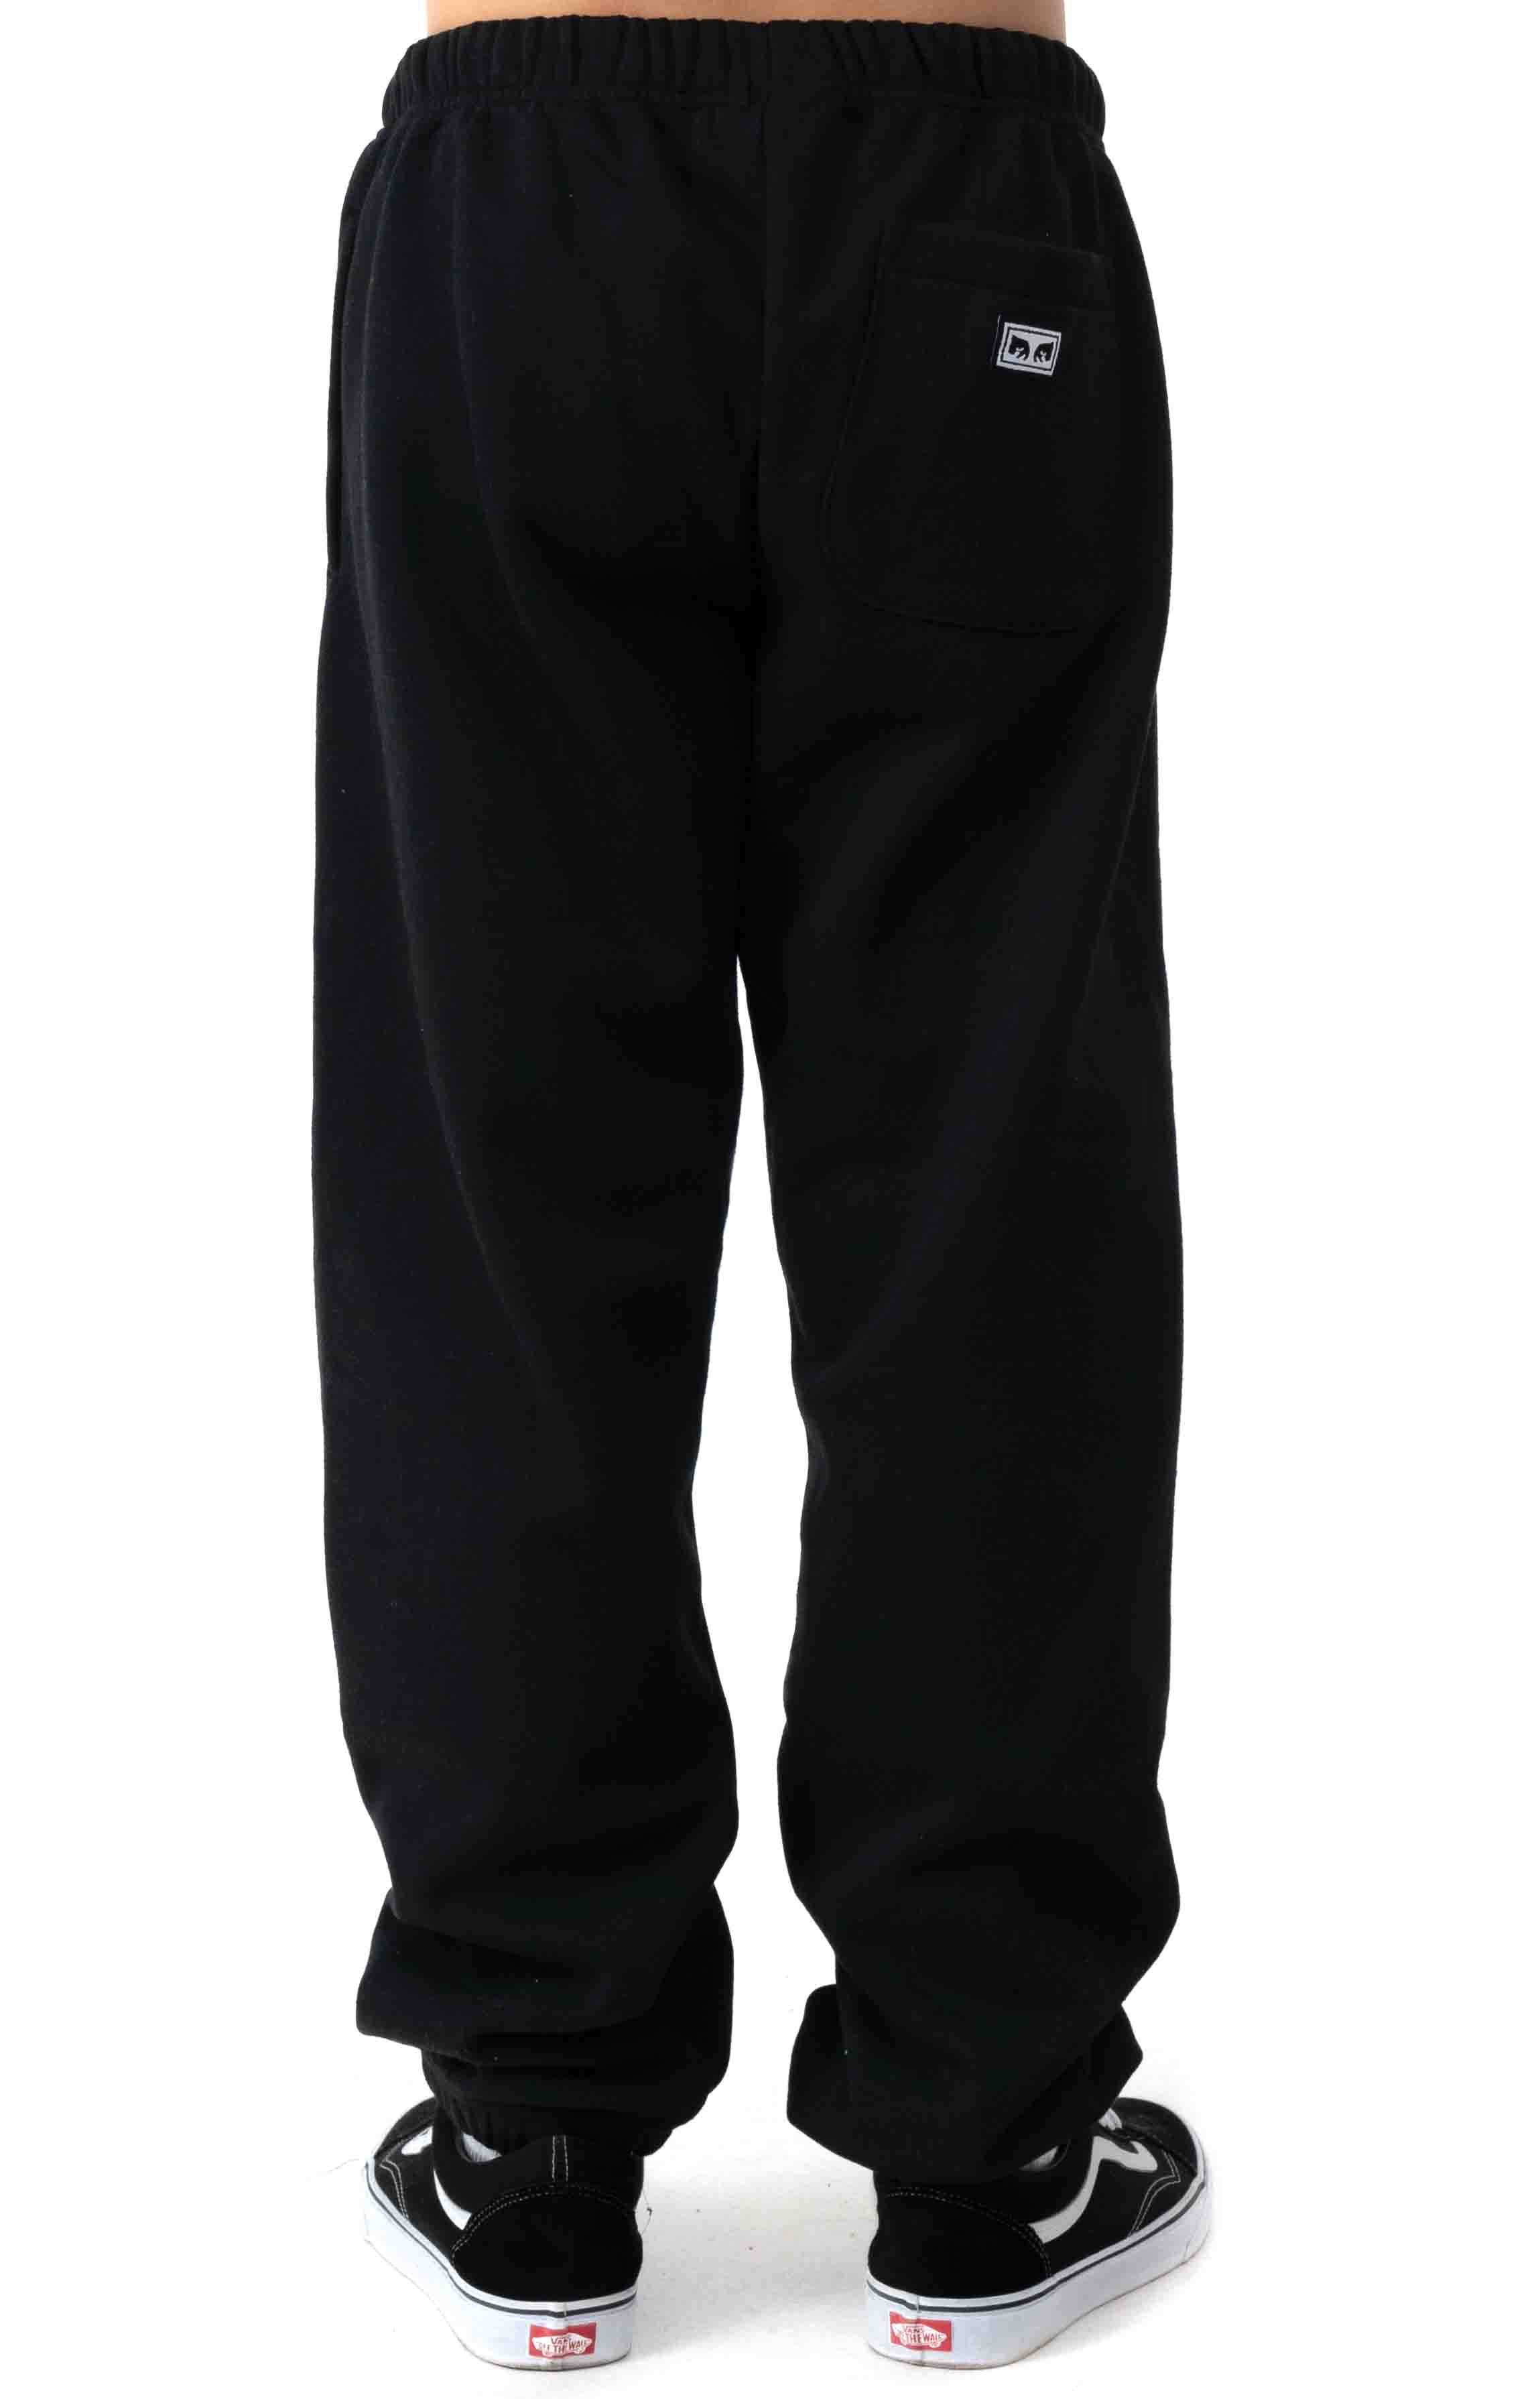 Kyoto Sweatpants - Black 3